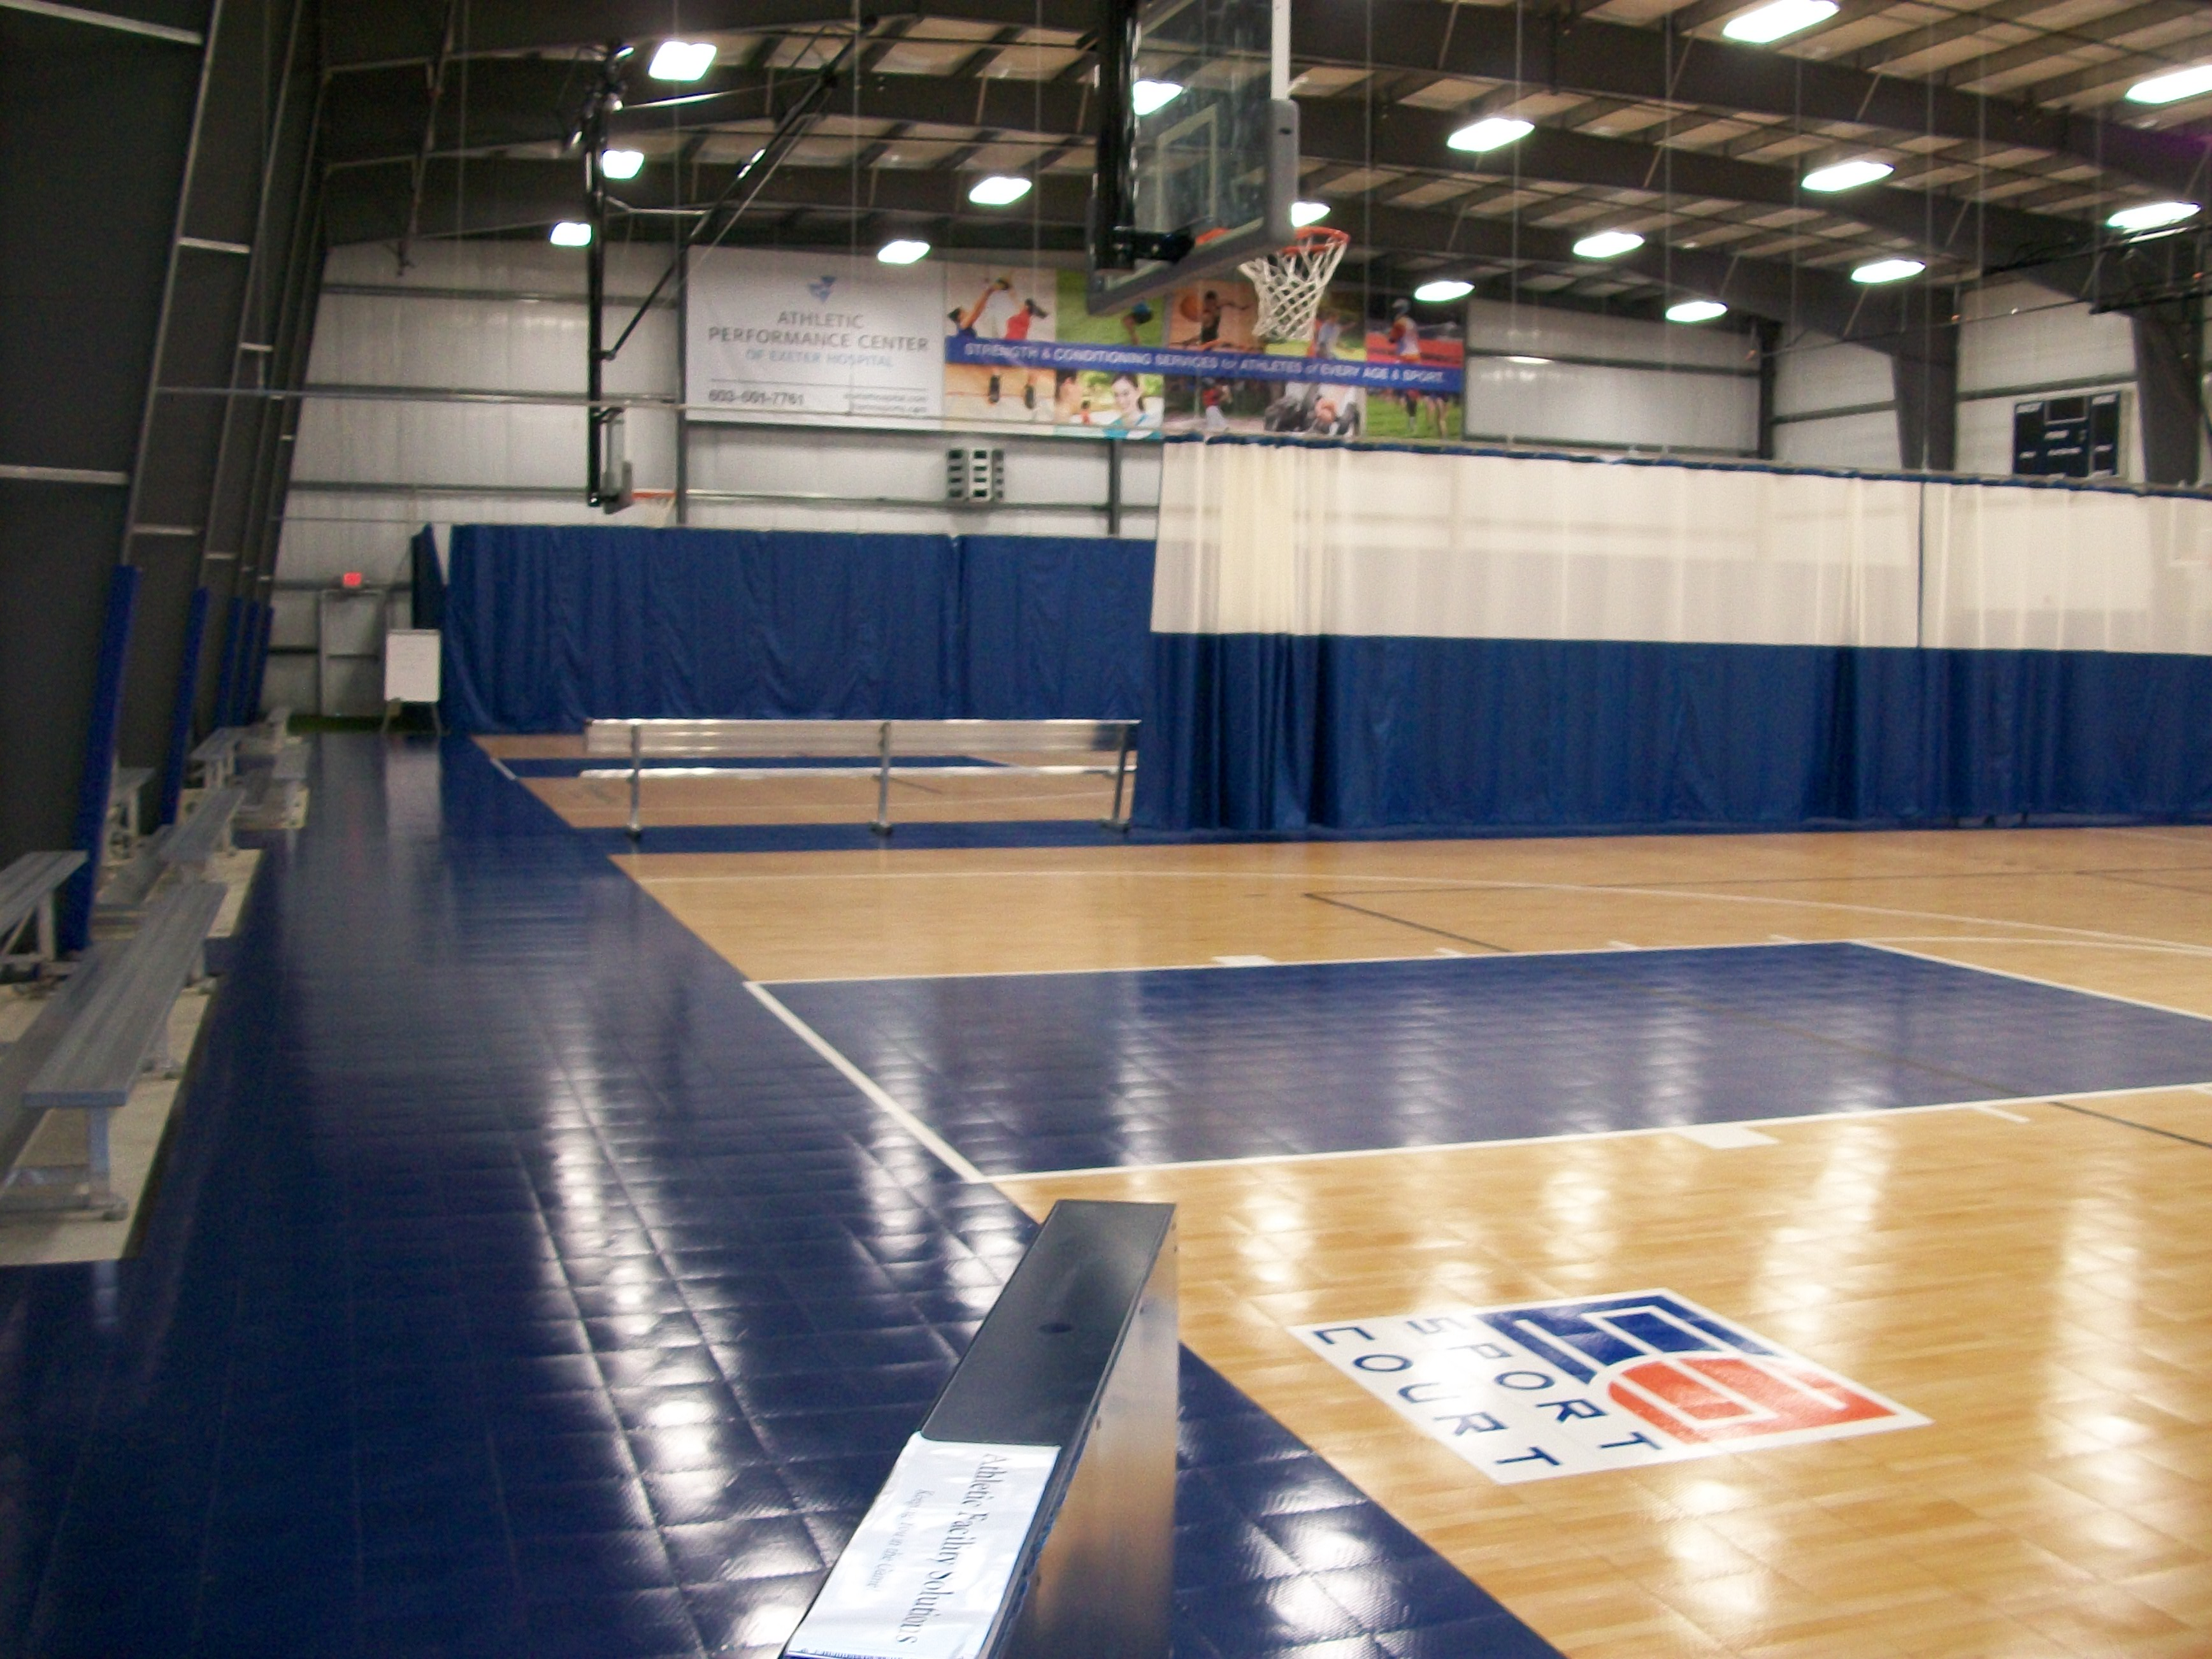 Vinyl Curtains In Back And Mesh On Track With Sport Court Basketball